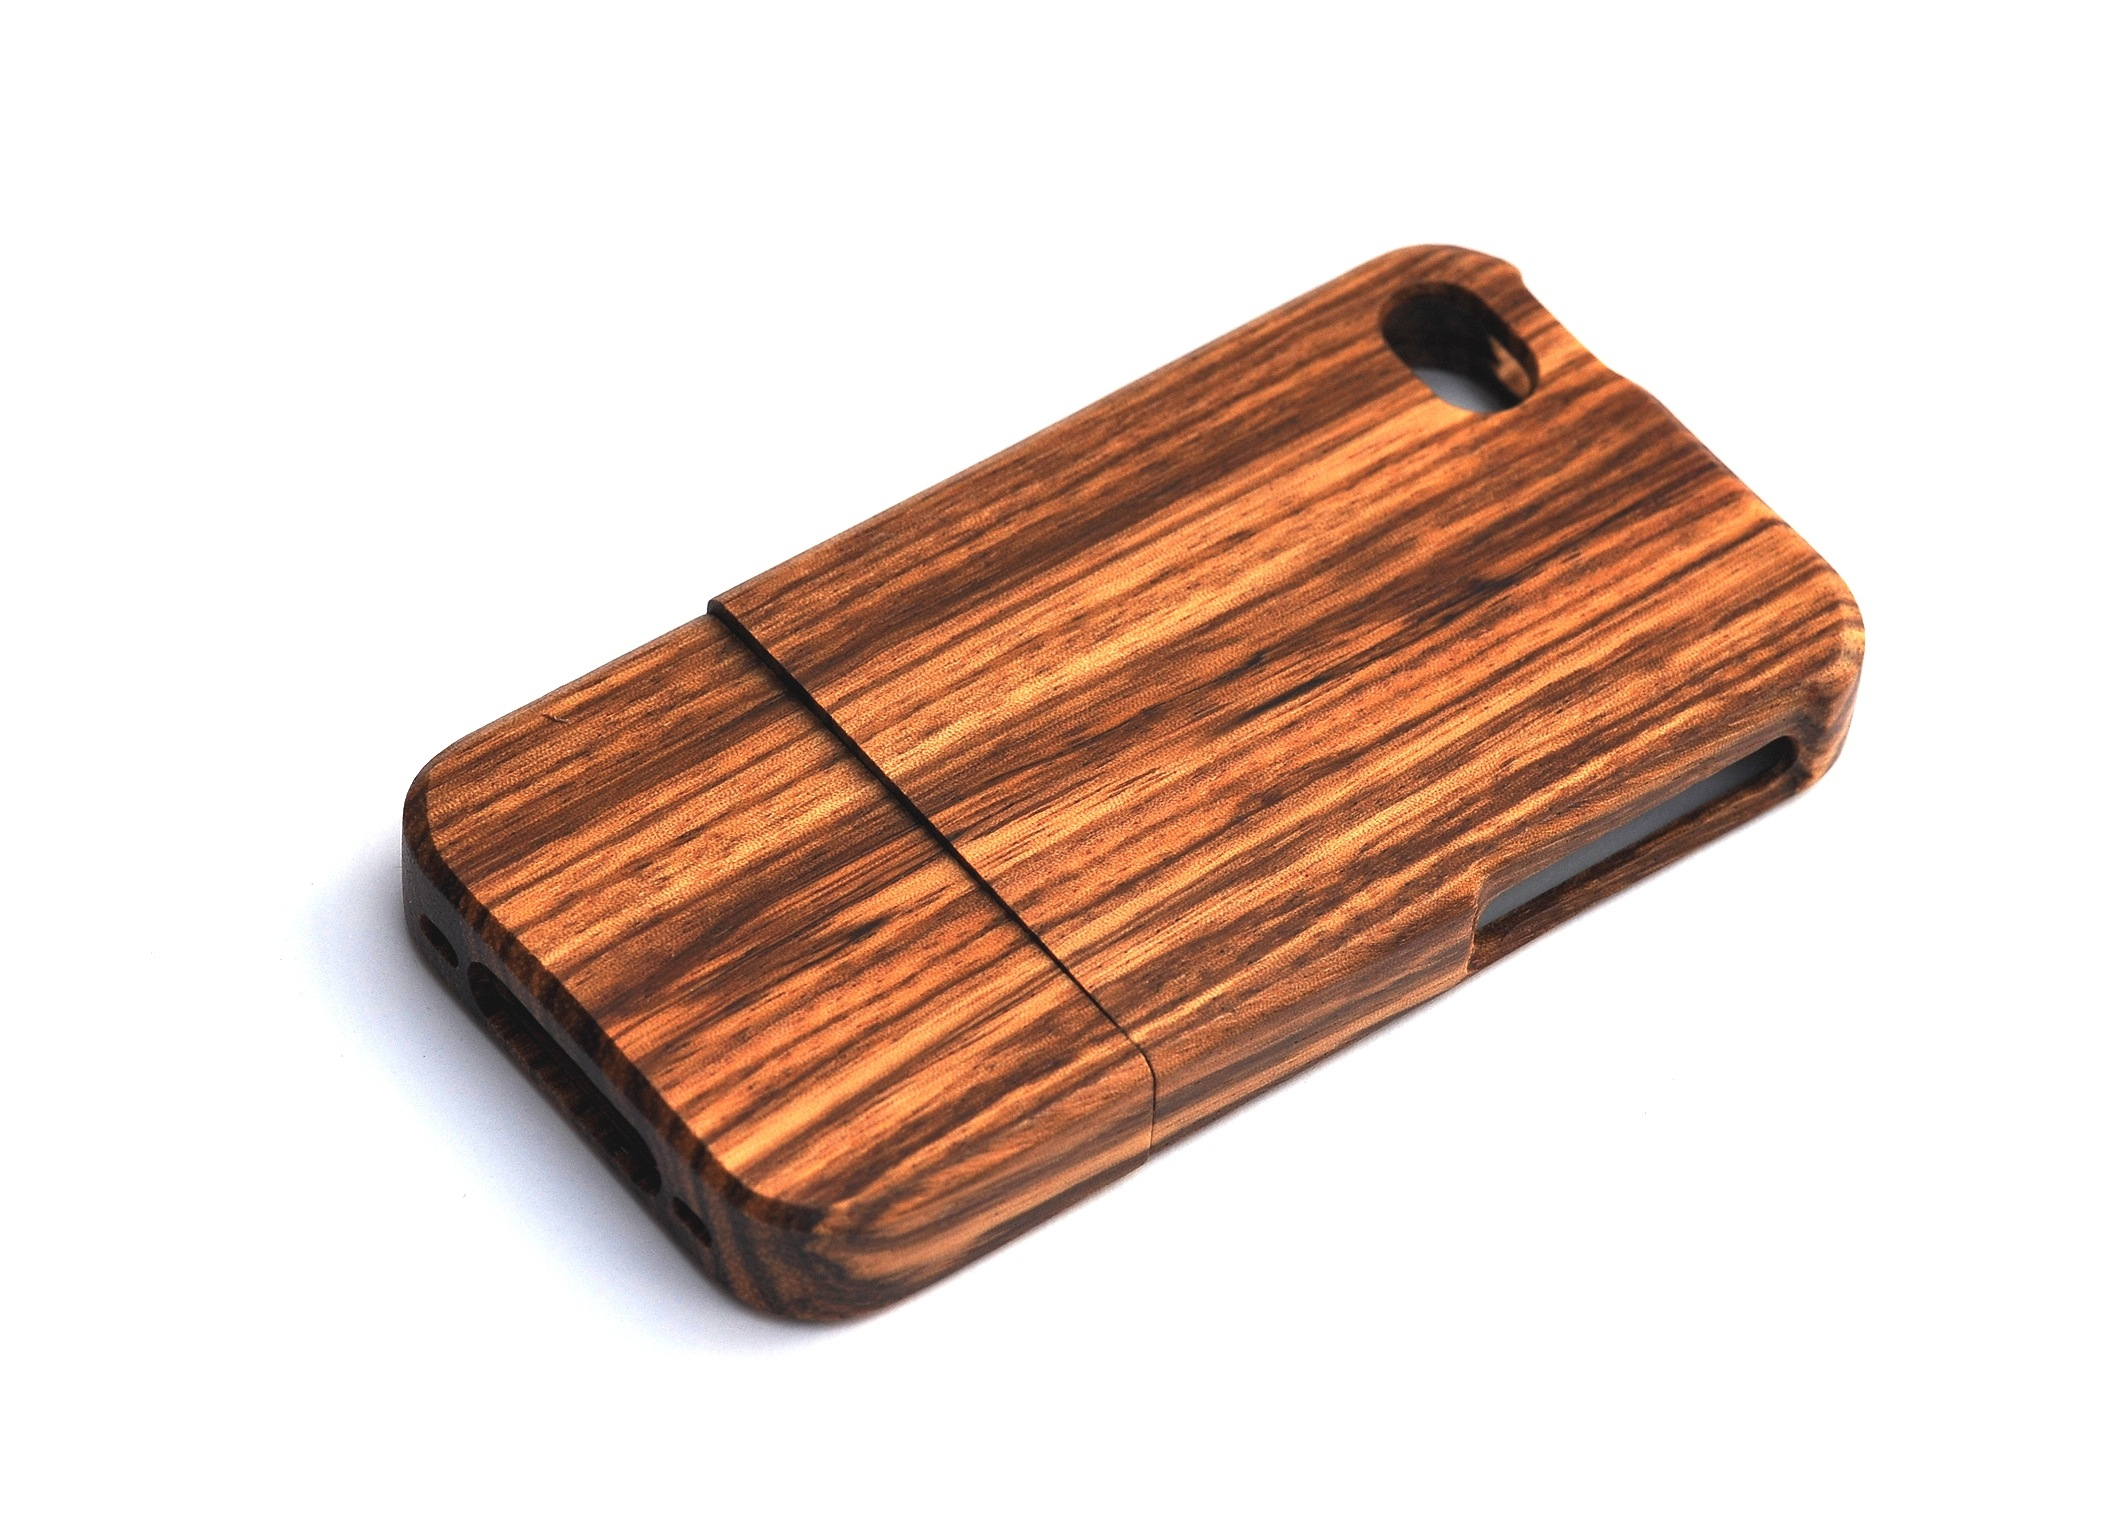 Iphone 4s wooden cover 100 procent zebrano 269 00 kr smukt cover til